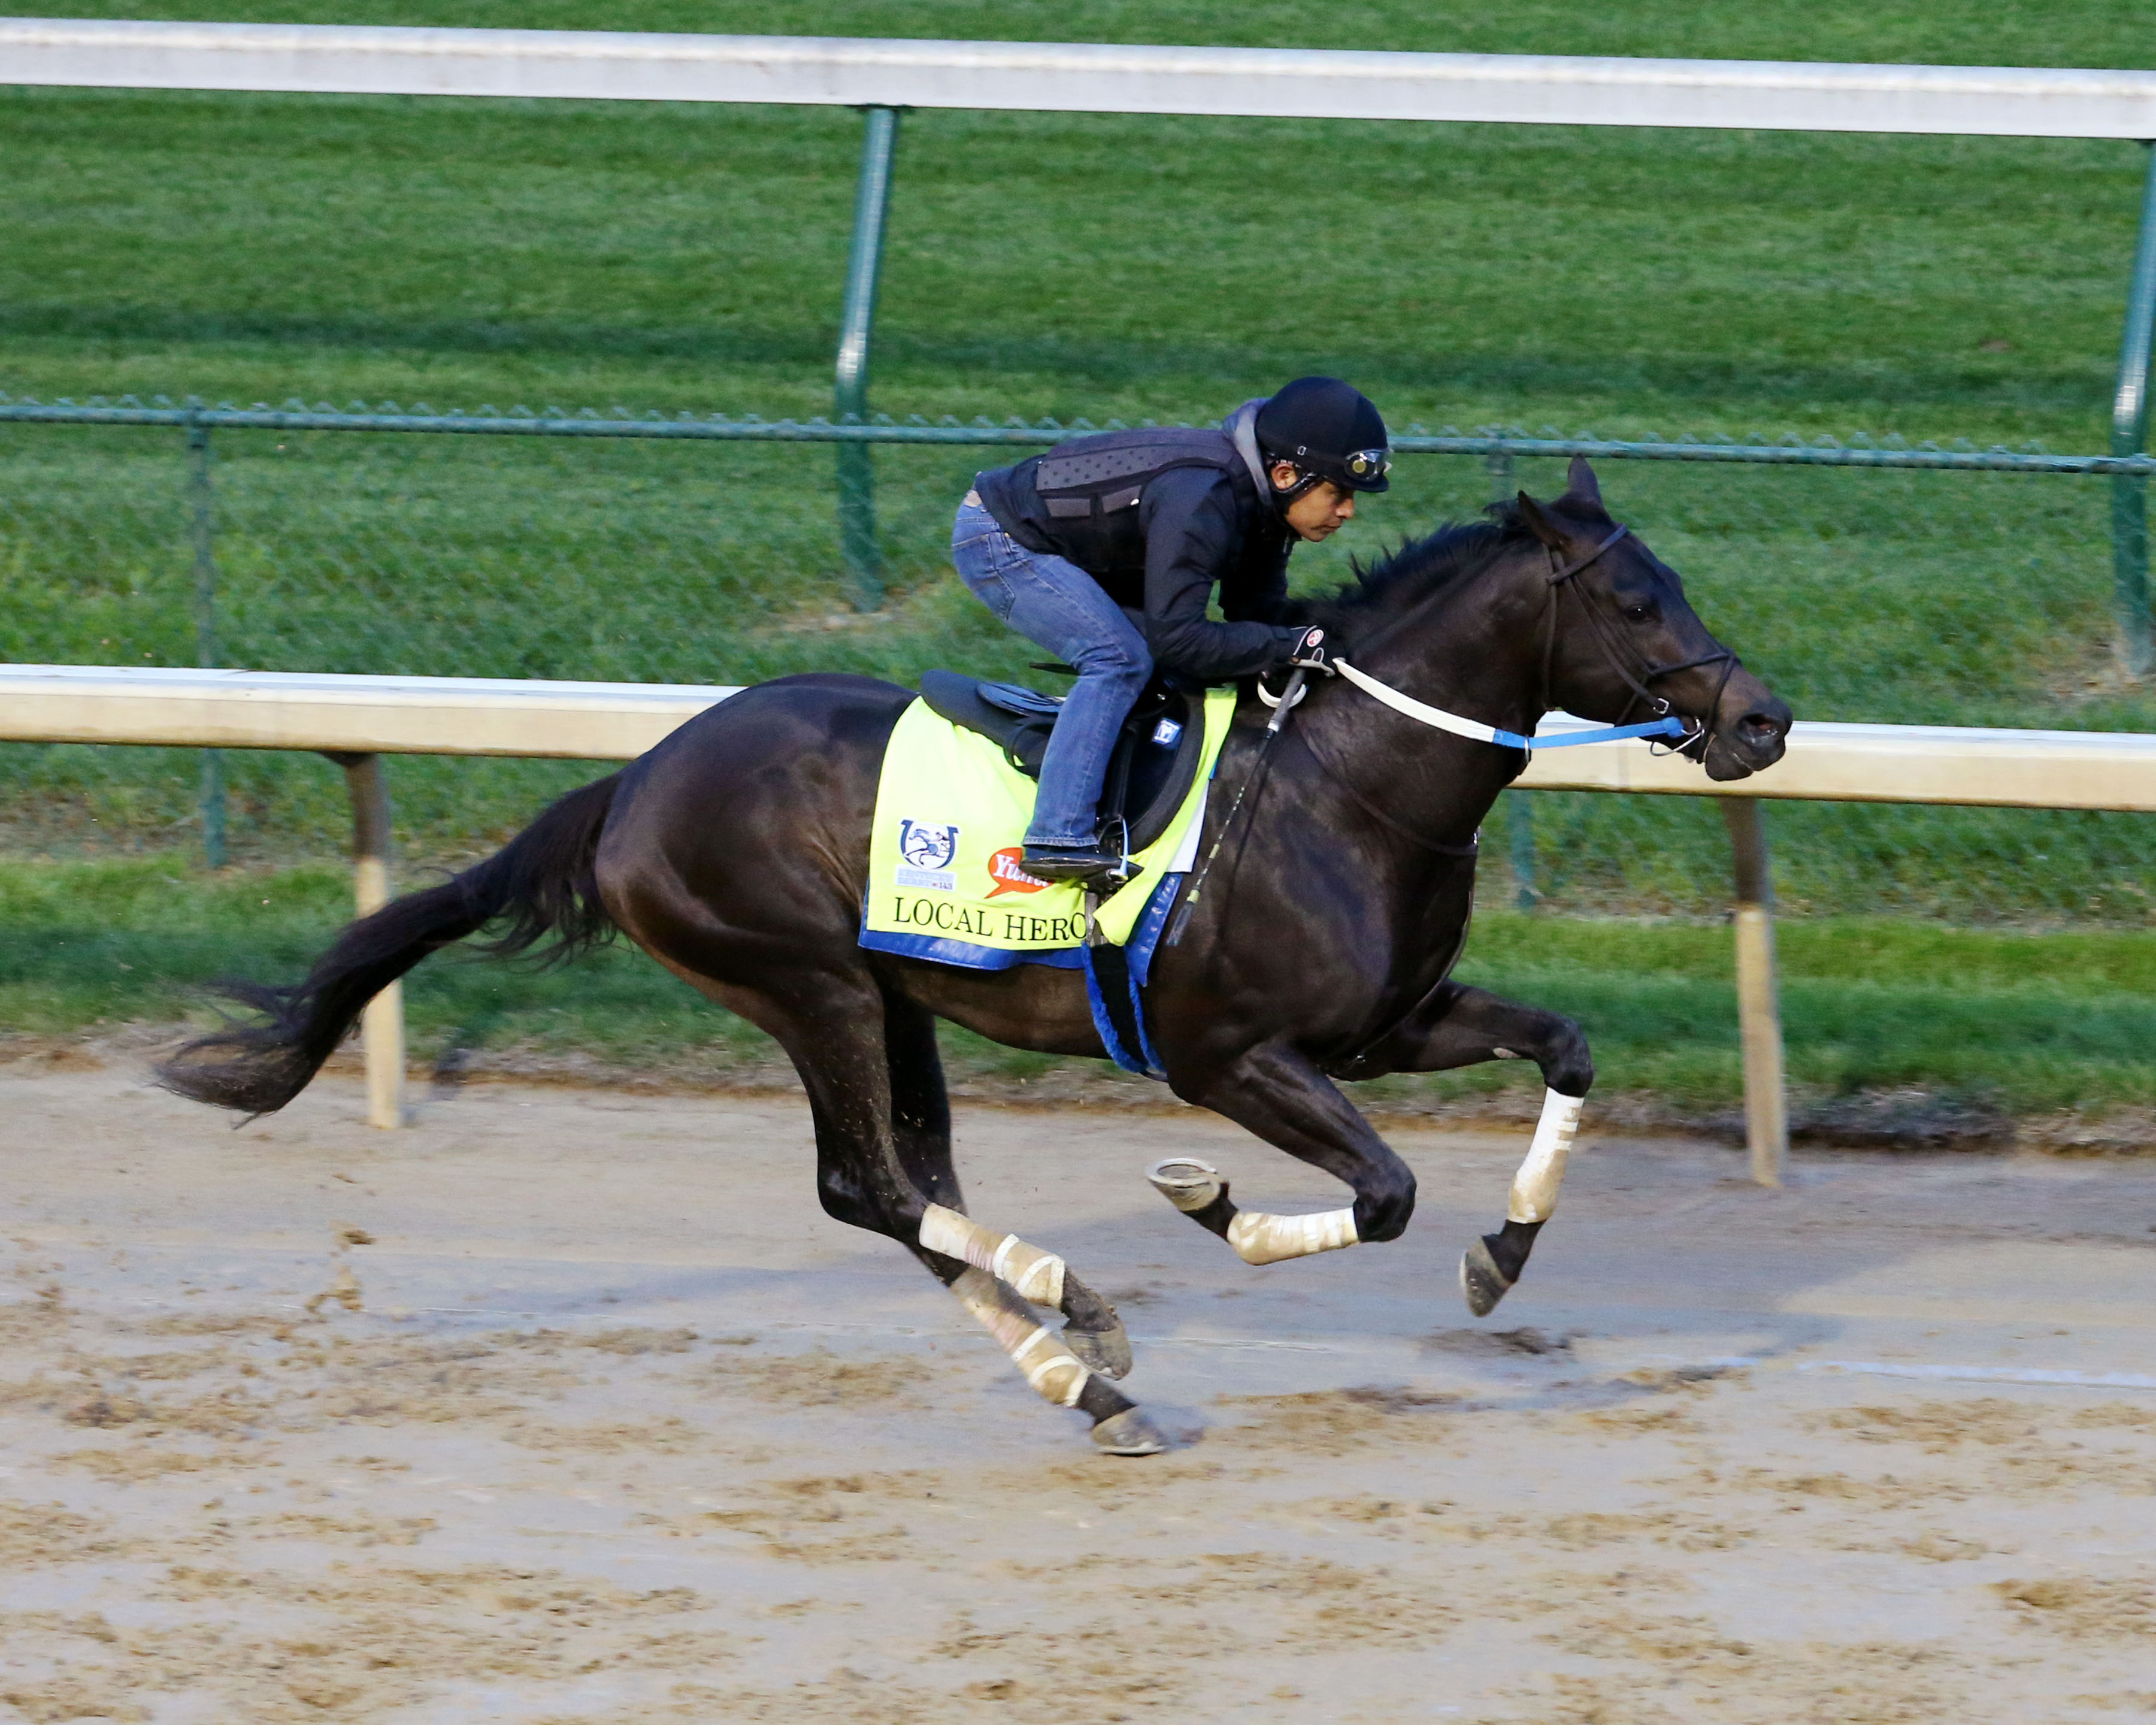 Local Hero will run in the Pat Day Mile on the Derby undercard. Photo Credit: Coady Photography/Churchill Downs